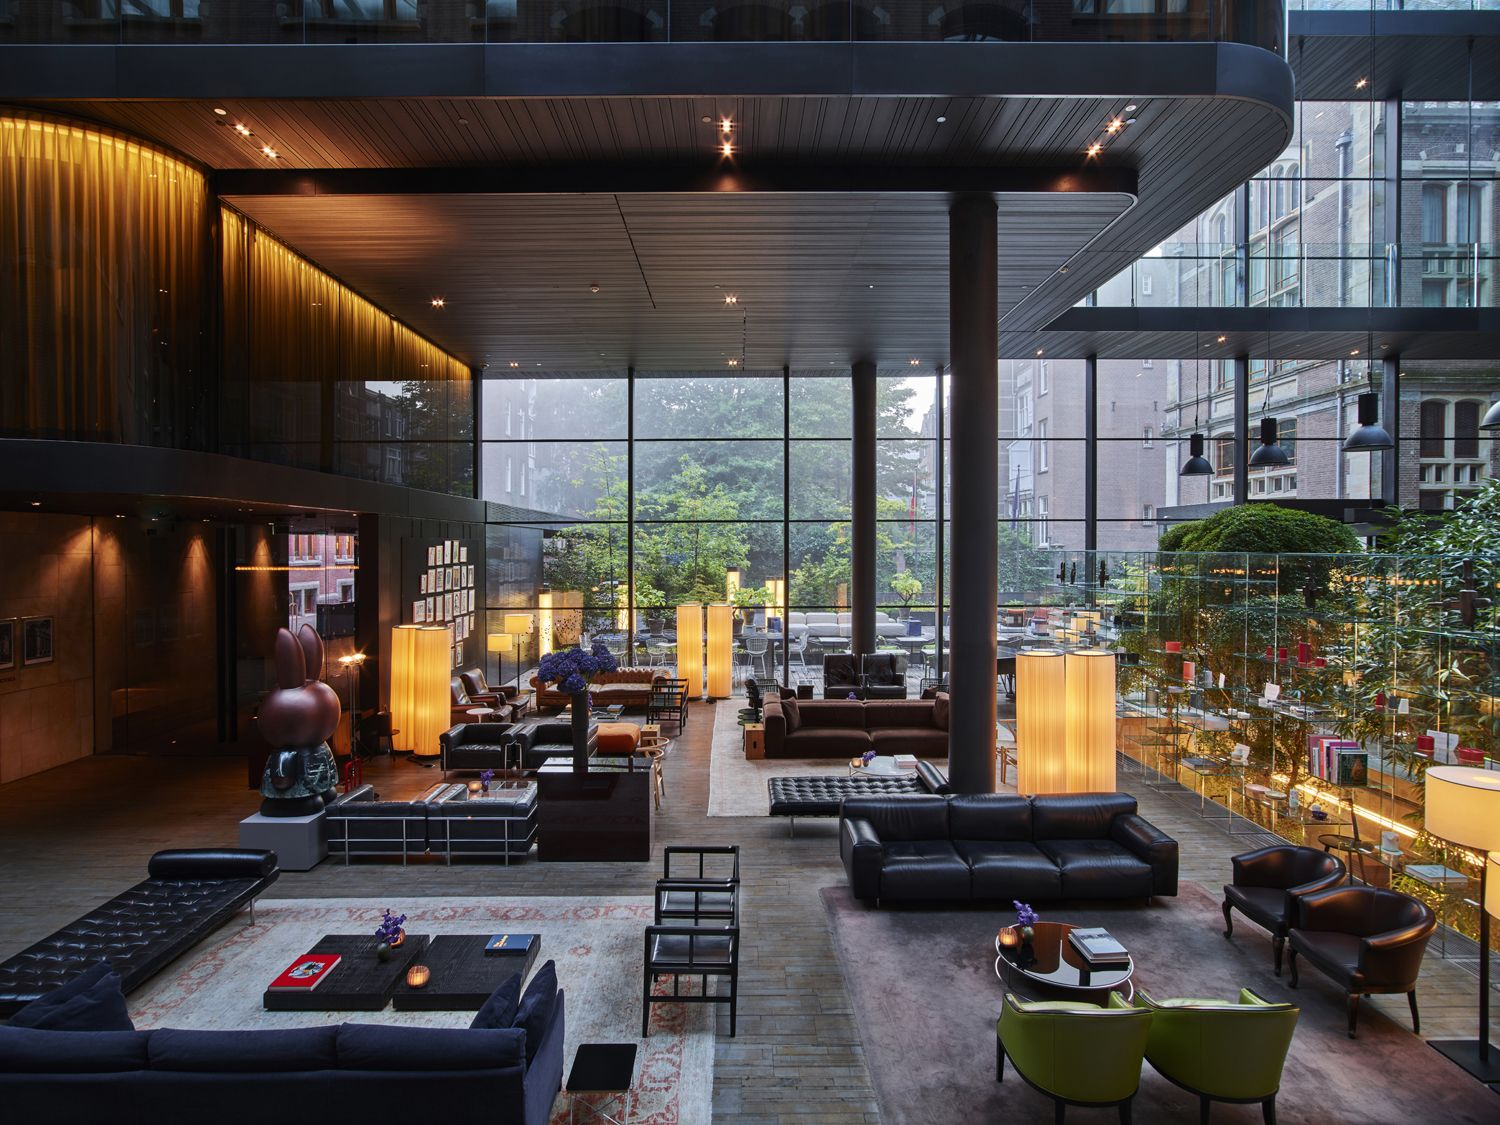 This Is Why You Should Stay At Amsterdam's Conservatorium Hotel